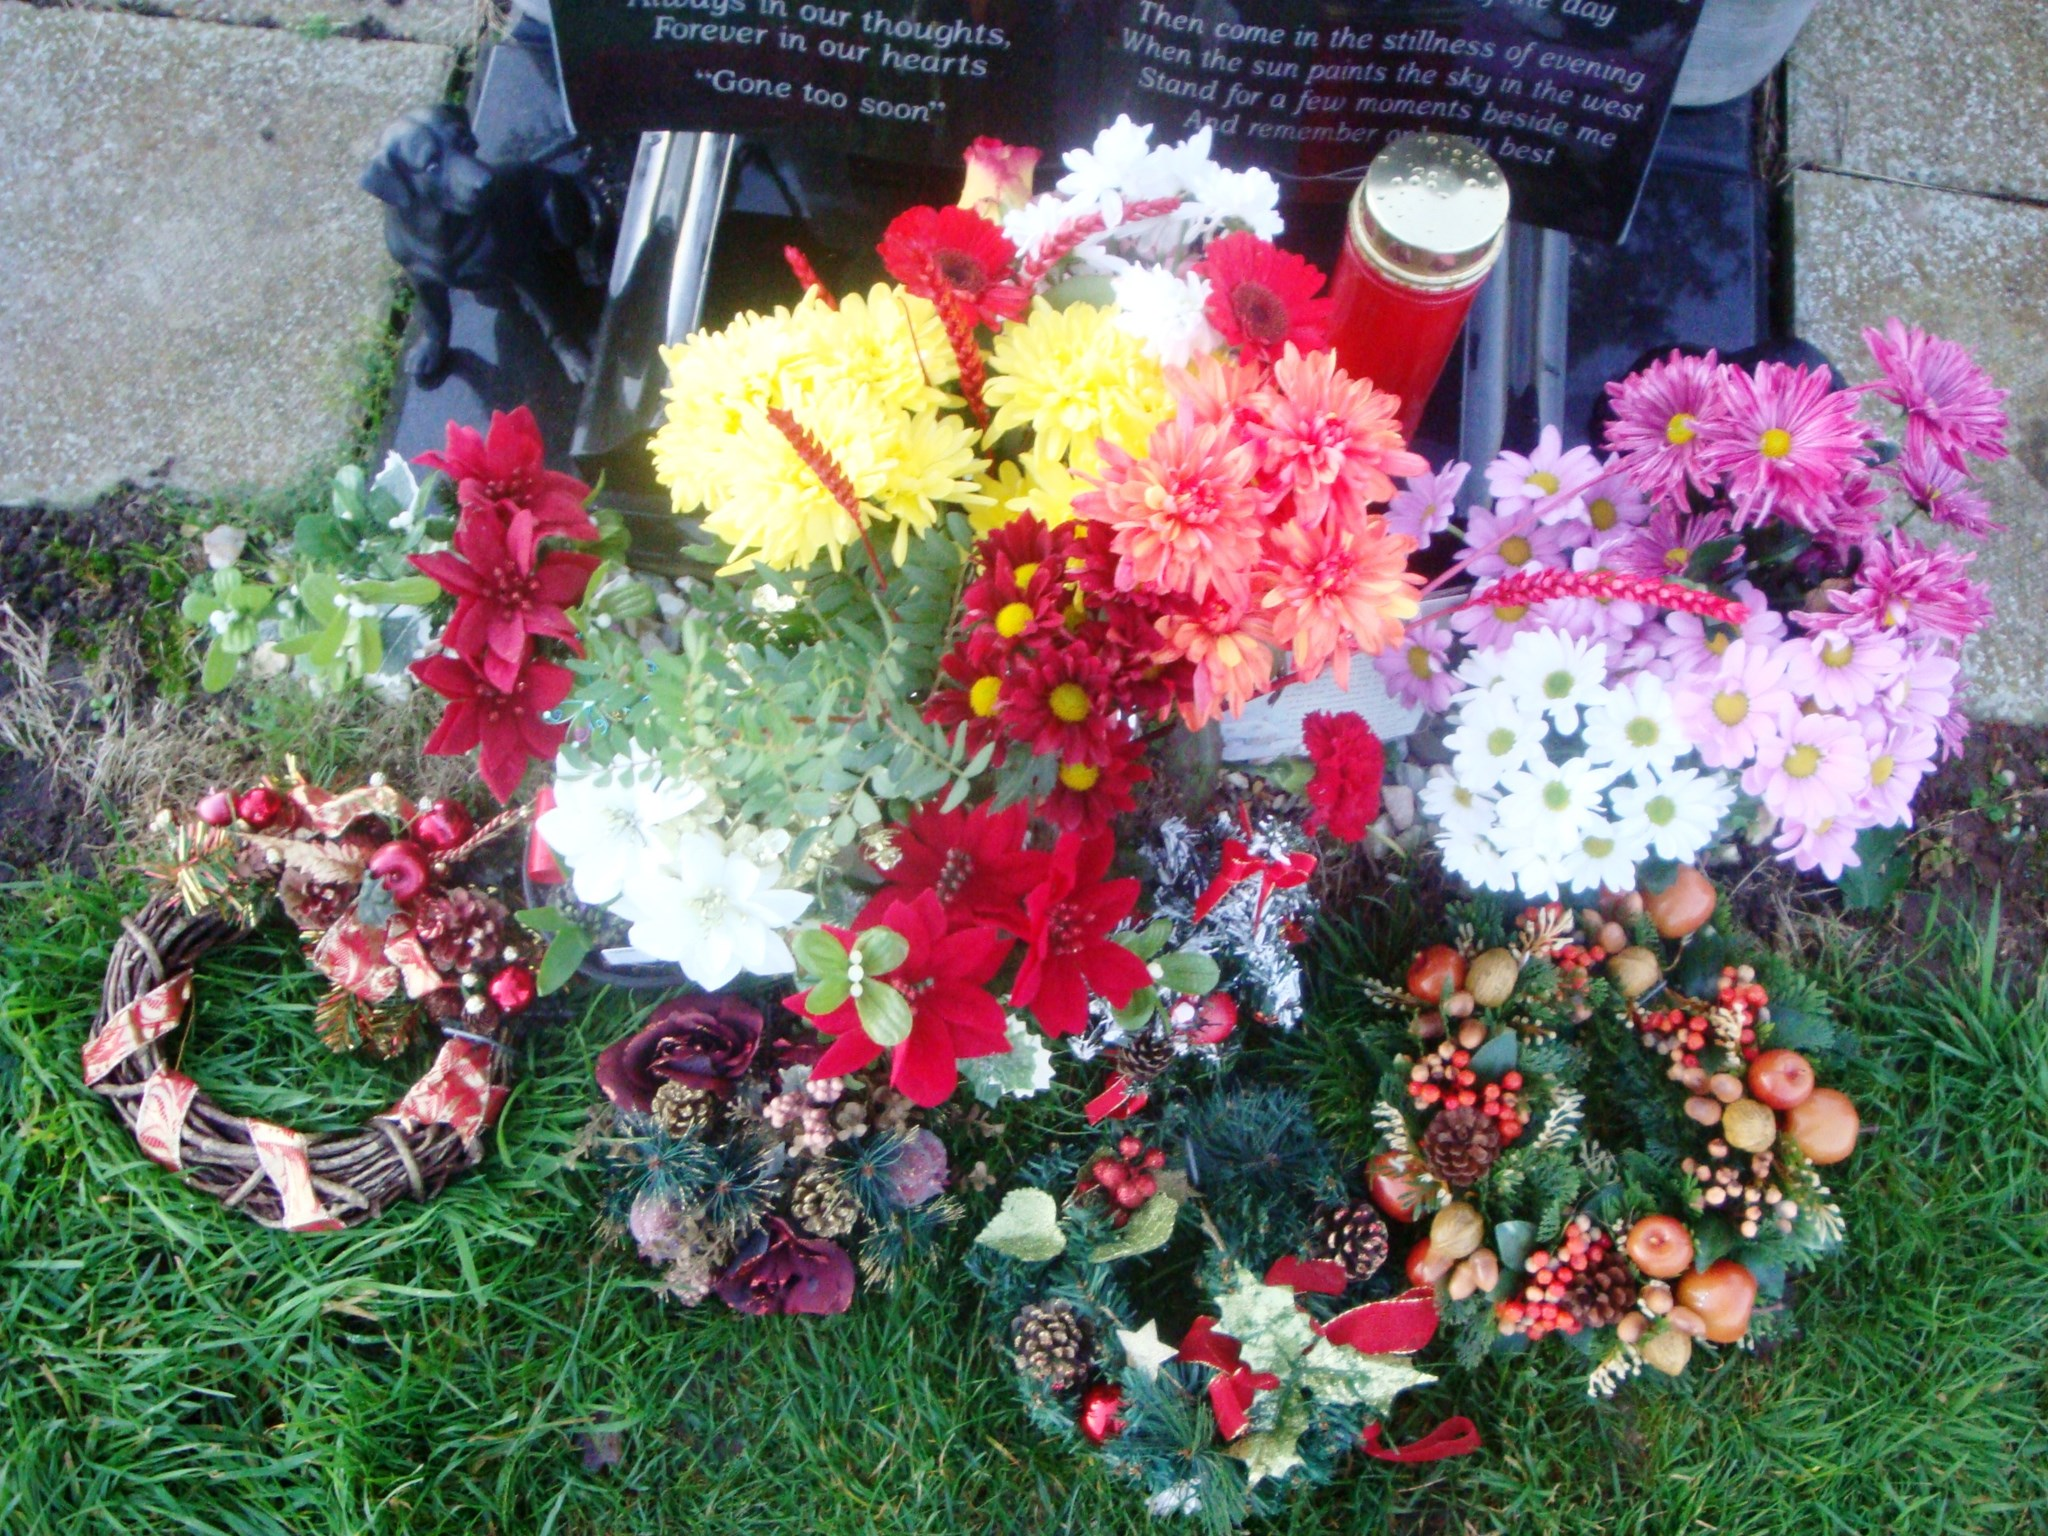 Christmas tributes for Paul from family and friends - 24th December 2015